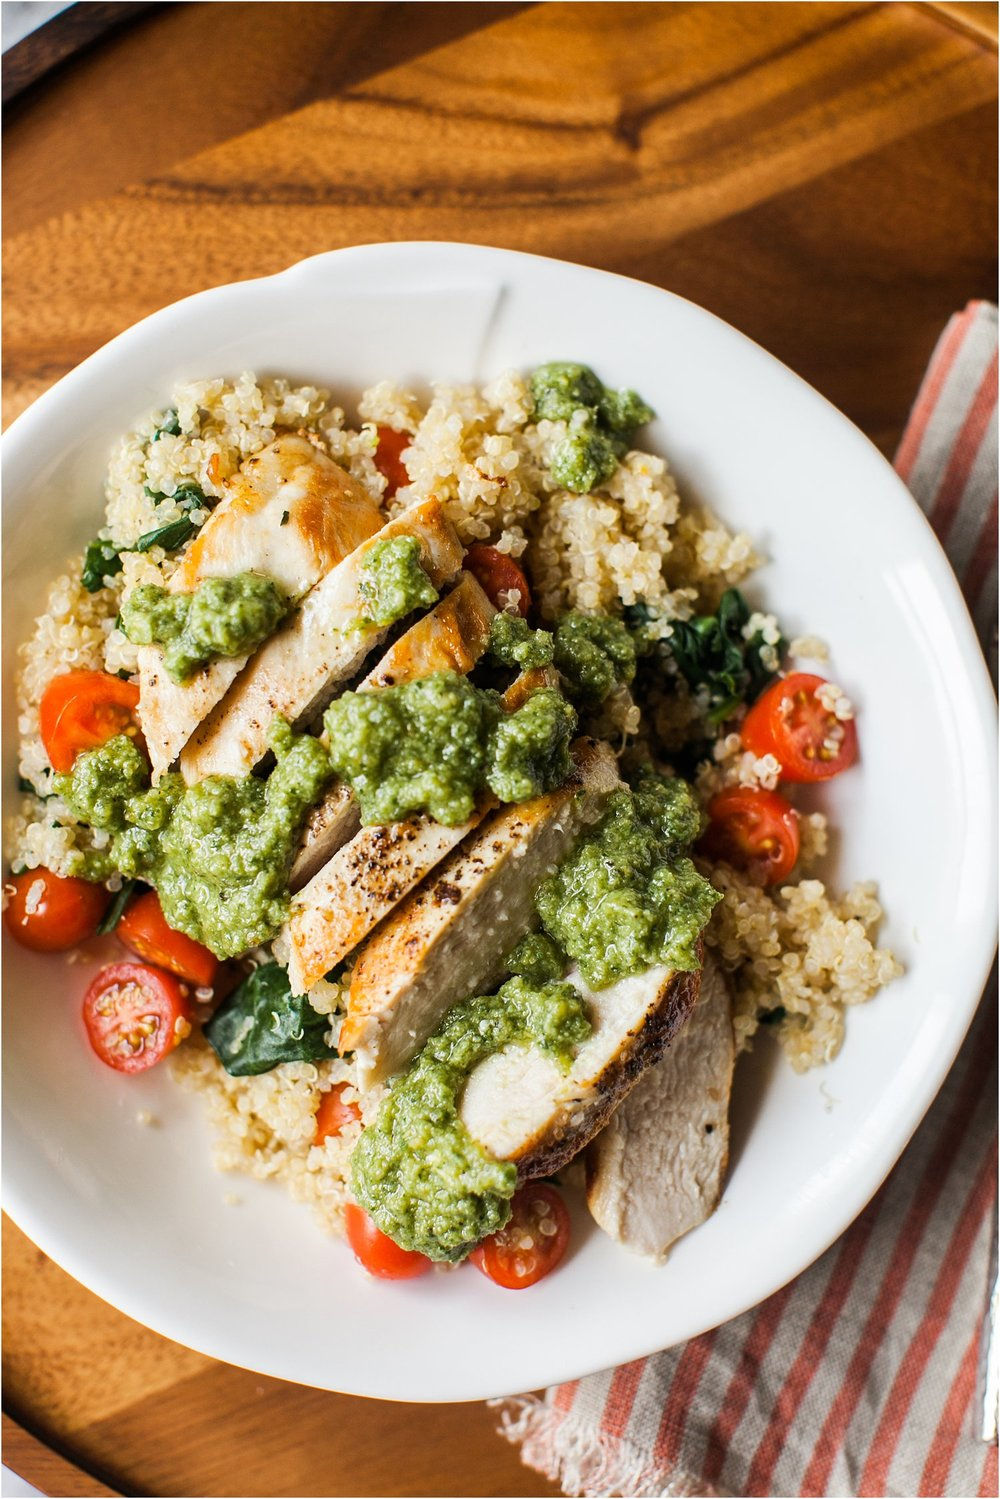 Chicken Pesto Quinoa Bowl | Easy Dinner Recipe | Feast & Dwell